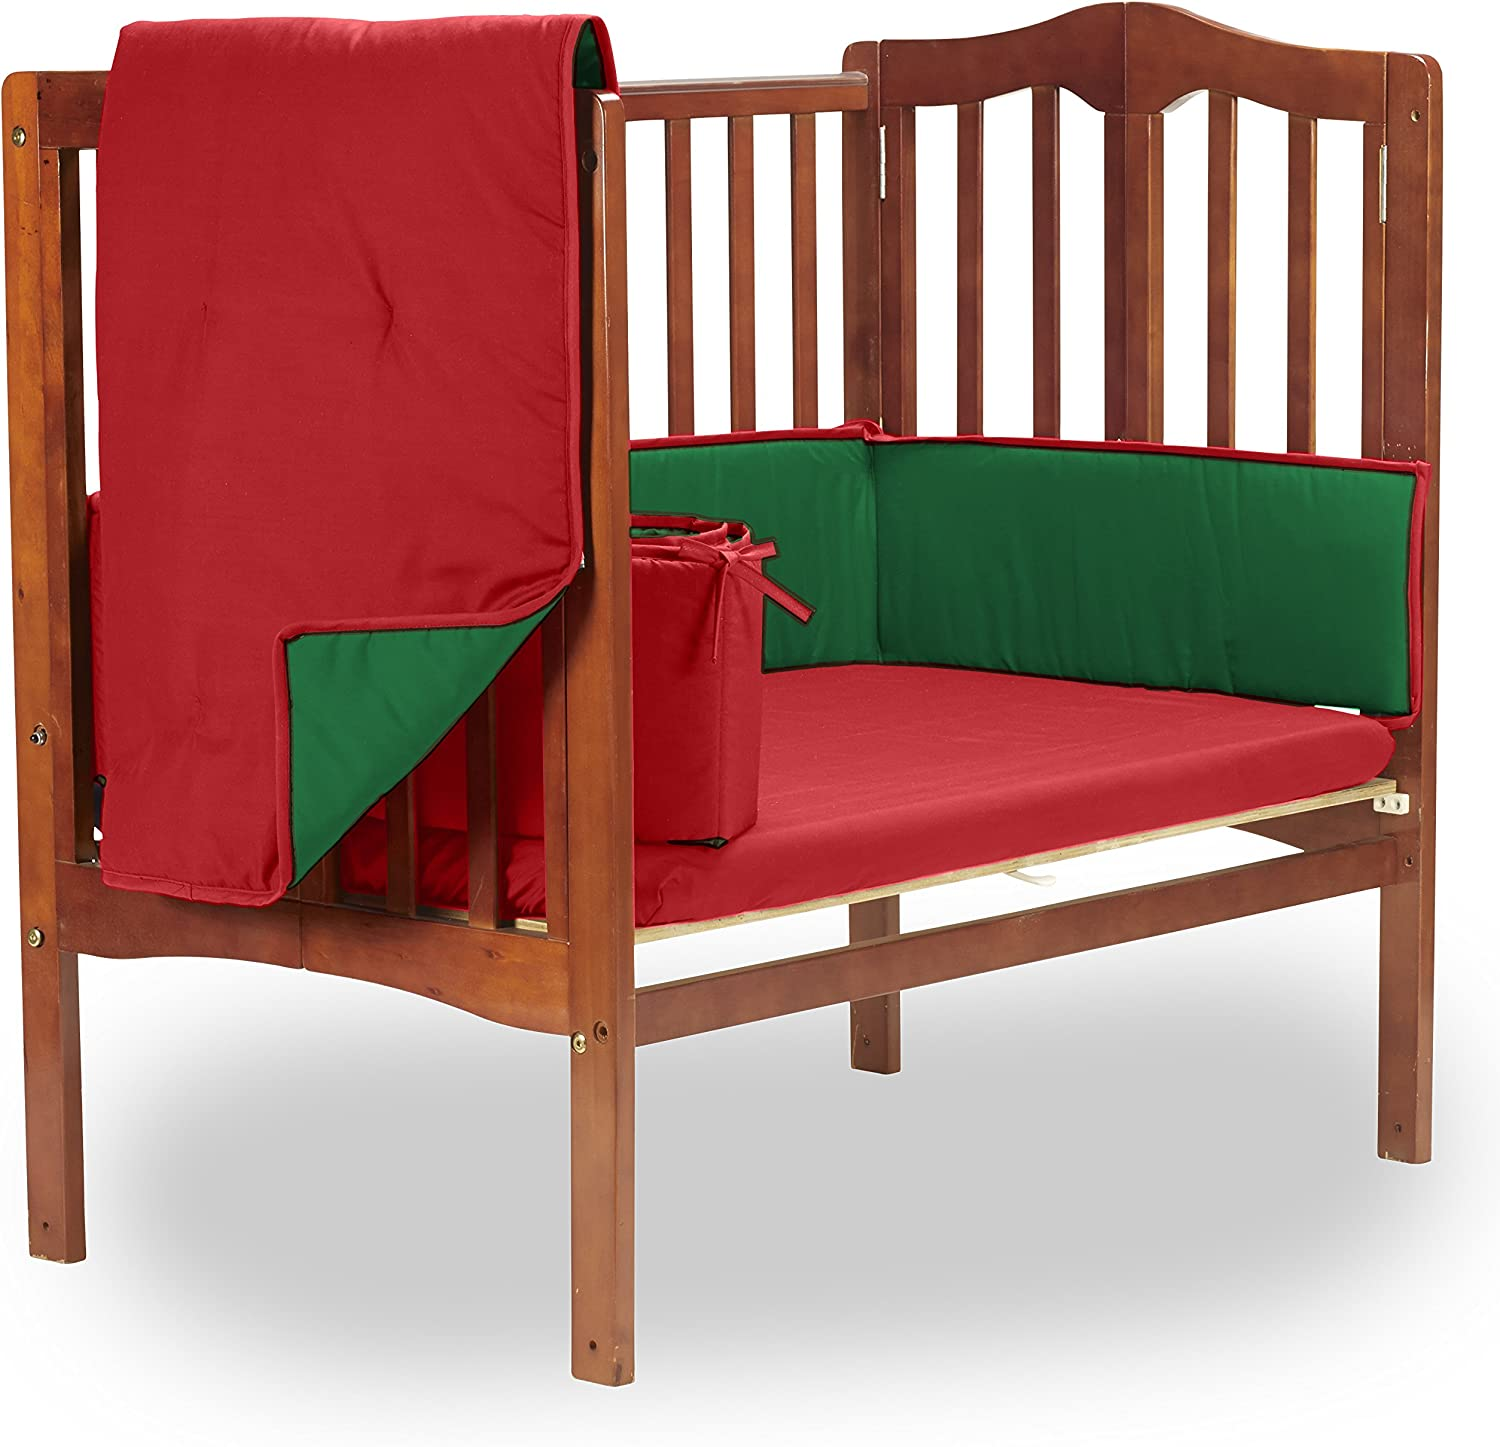 Baby Doll Bedding Solid Reversible PMini Crib/ ort-a-Crib Bedding Set, Red/Green by BabyDoll Bedding